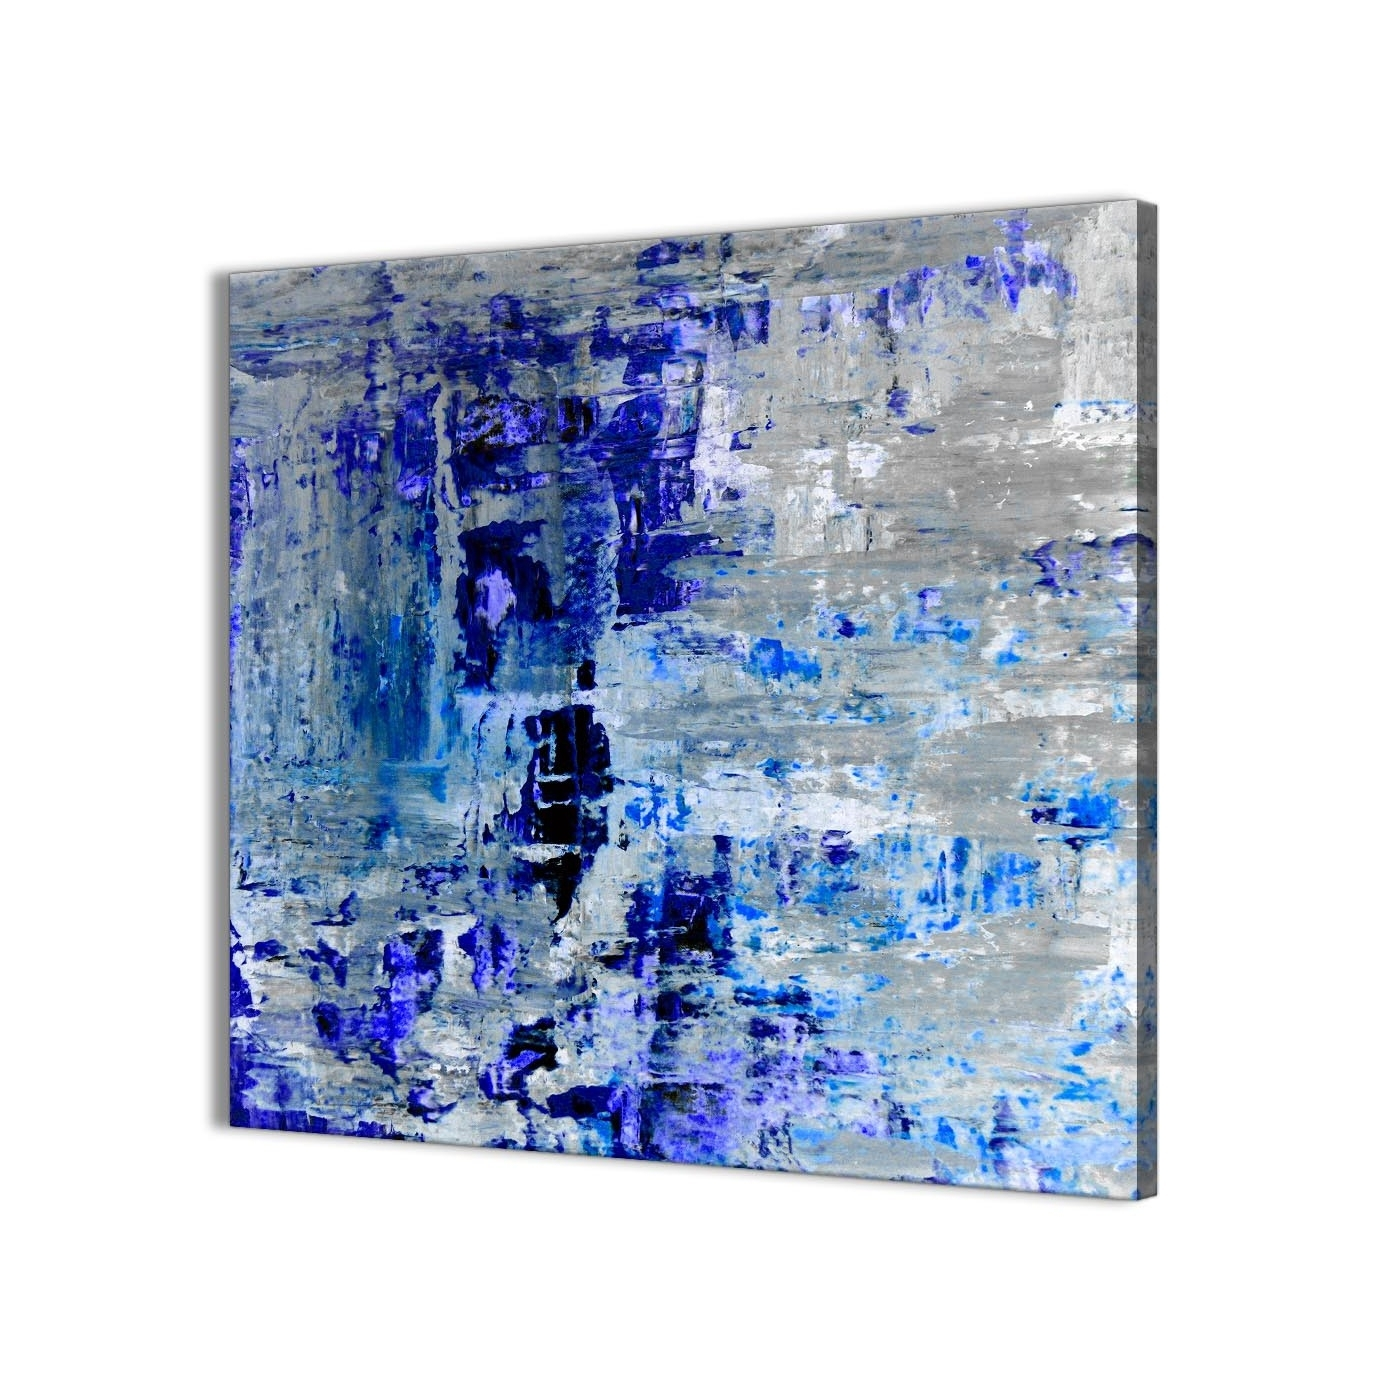 Trendy Indigo Blue Grey Abstract Painting Wall Art Print Canvas – Modern With Regard To Modern Abstract Painting Wall Art (View 14 of 15)